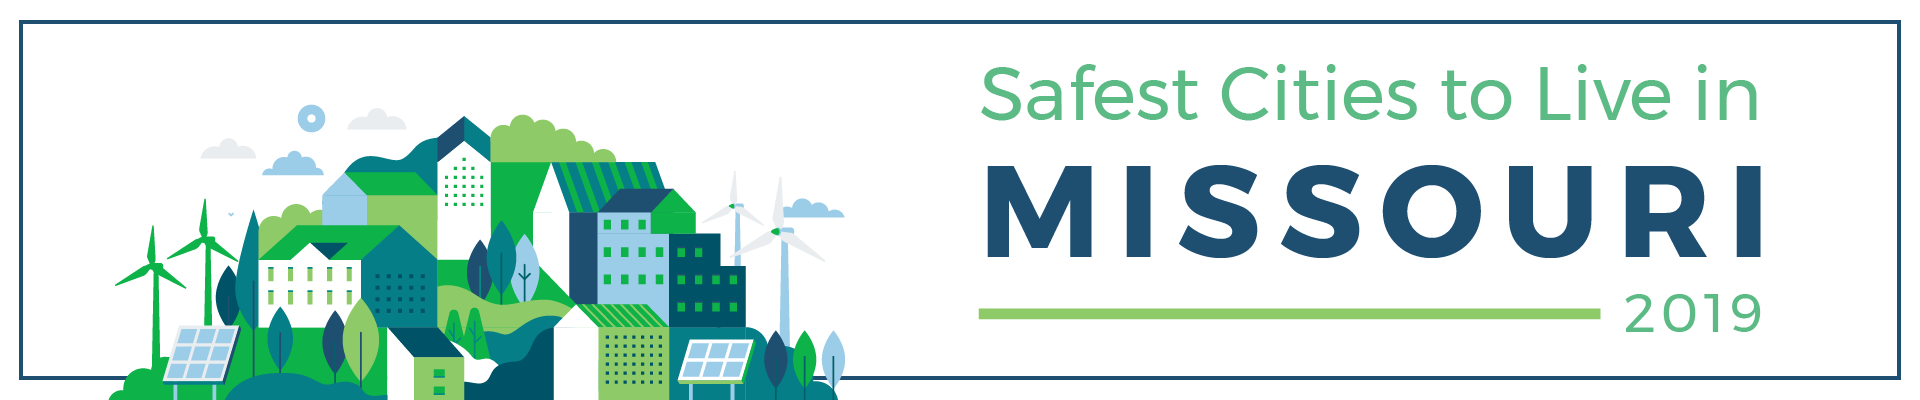 header - safest_cities_missouri_2019